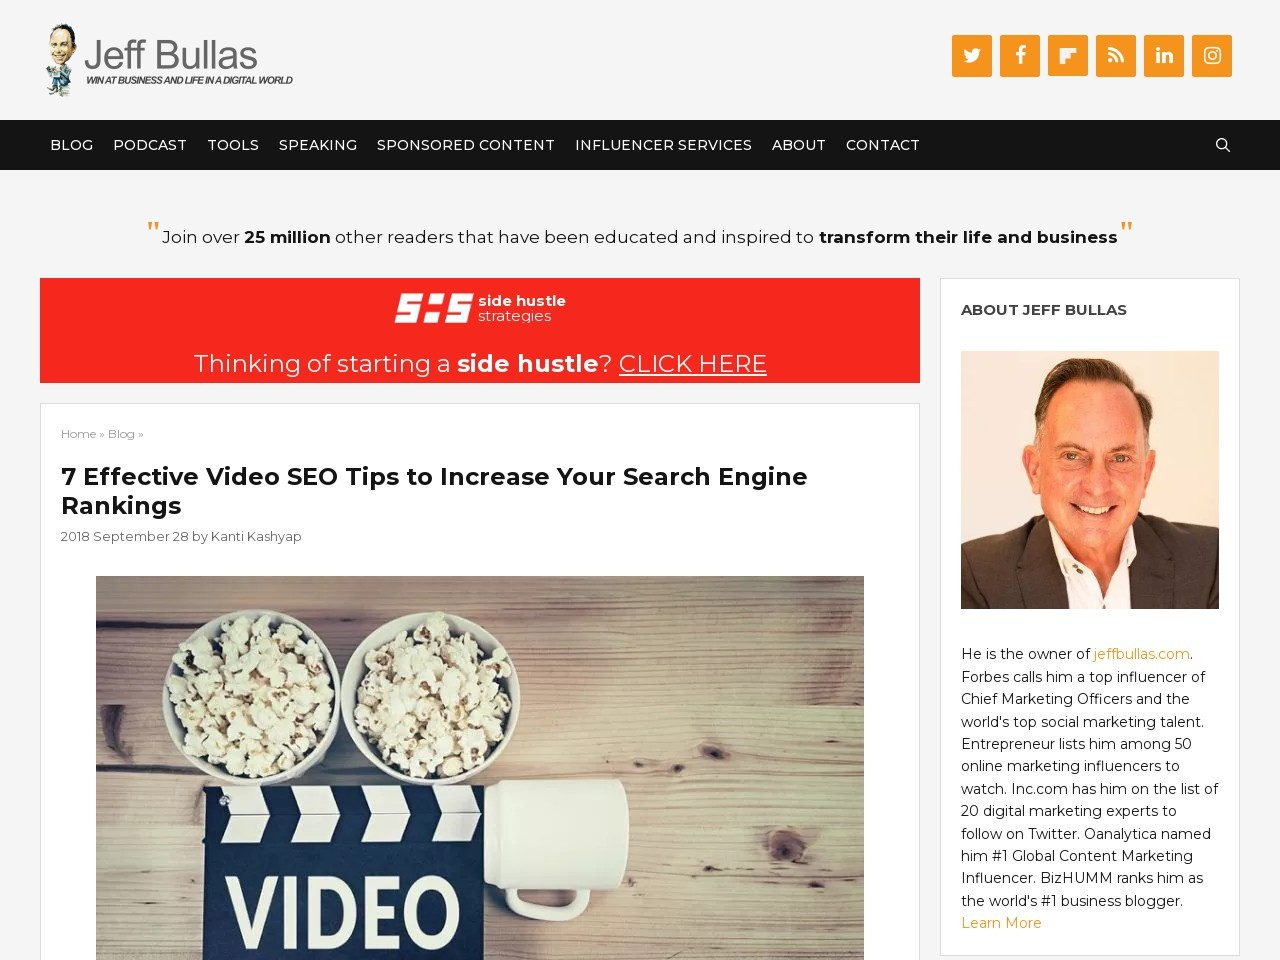 7 Effective Video SEO Tips to Increase Your Search Engine